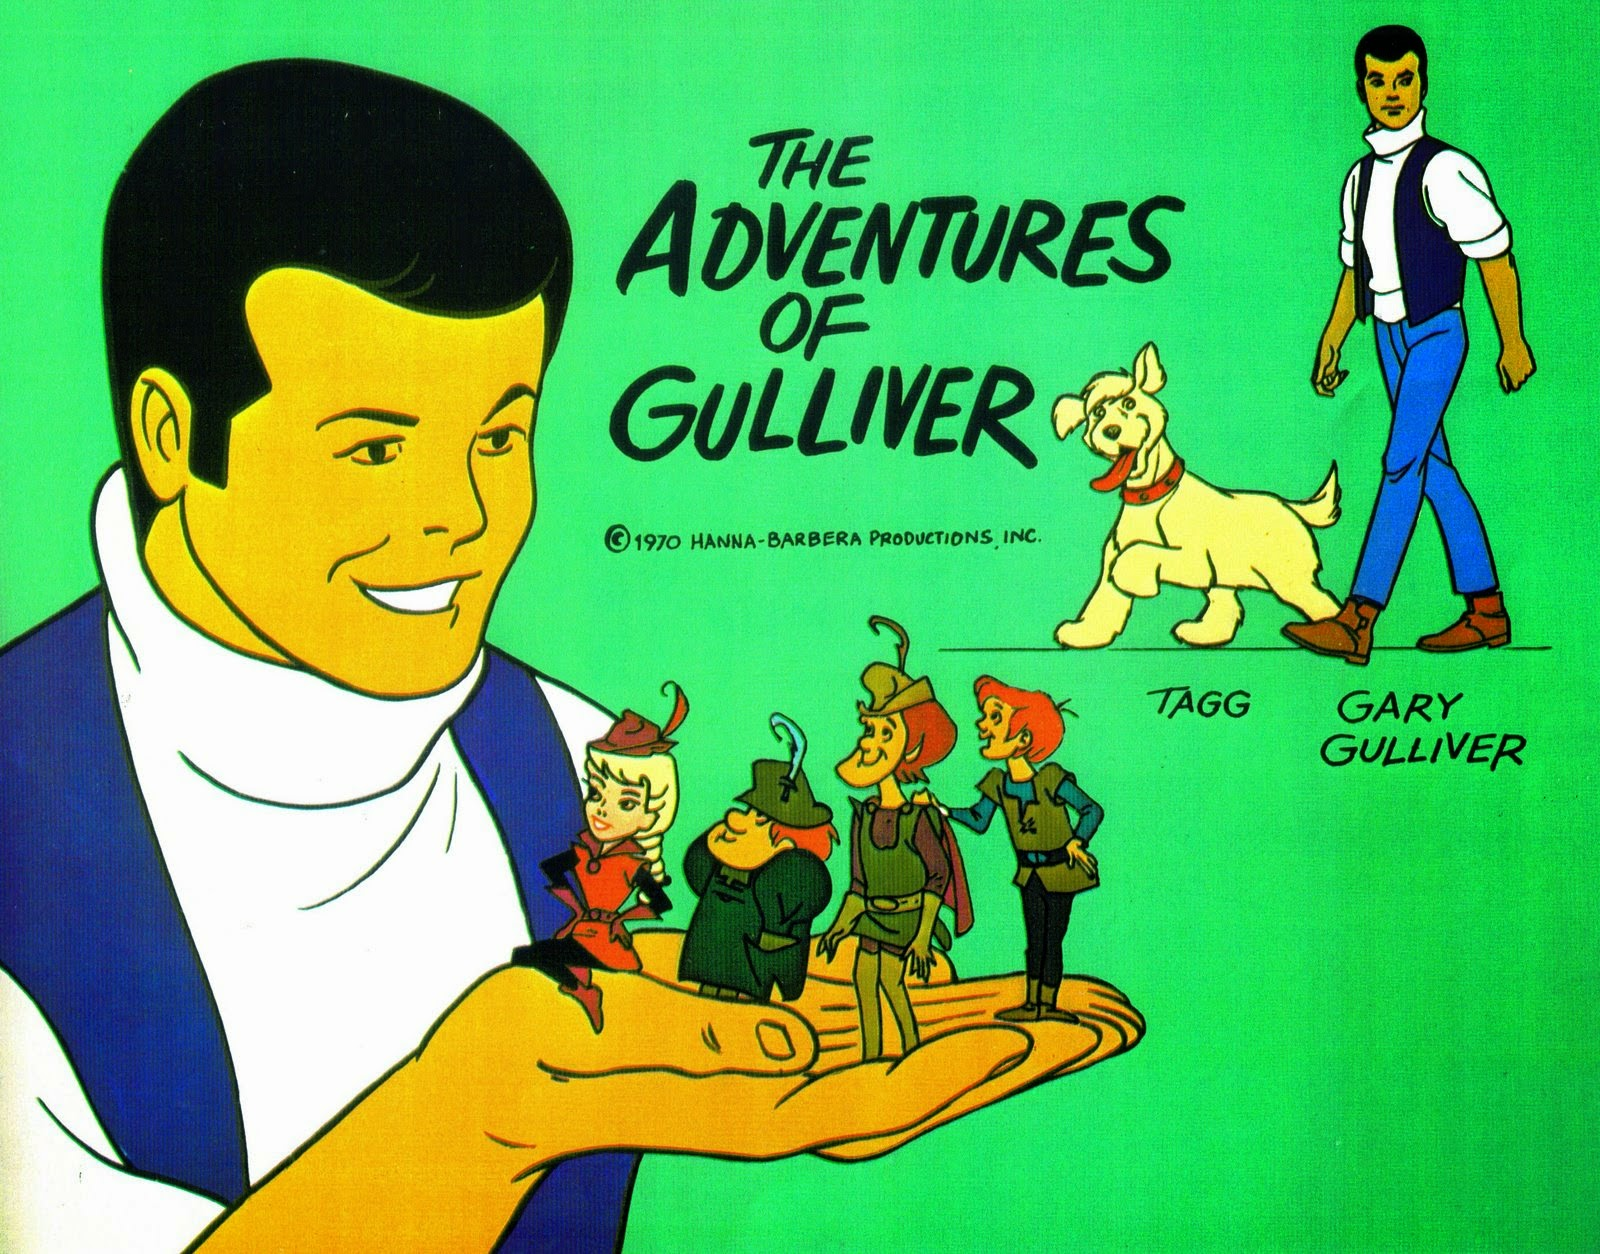 Ben 10  Alien Force furthermore Batman Reanimated Baby Doll moreover Gumball Mascot Adult Costumes besides Geek Tv Adventures Of Gulliver Aka further The Original Nicktoons. on old cartoon network episodes